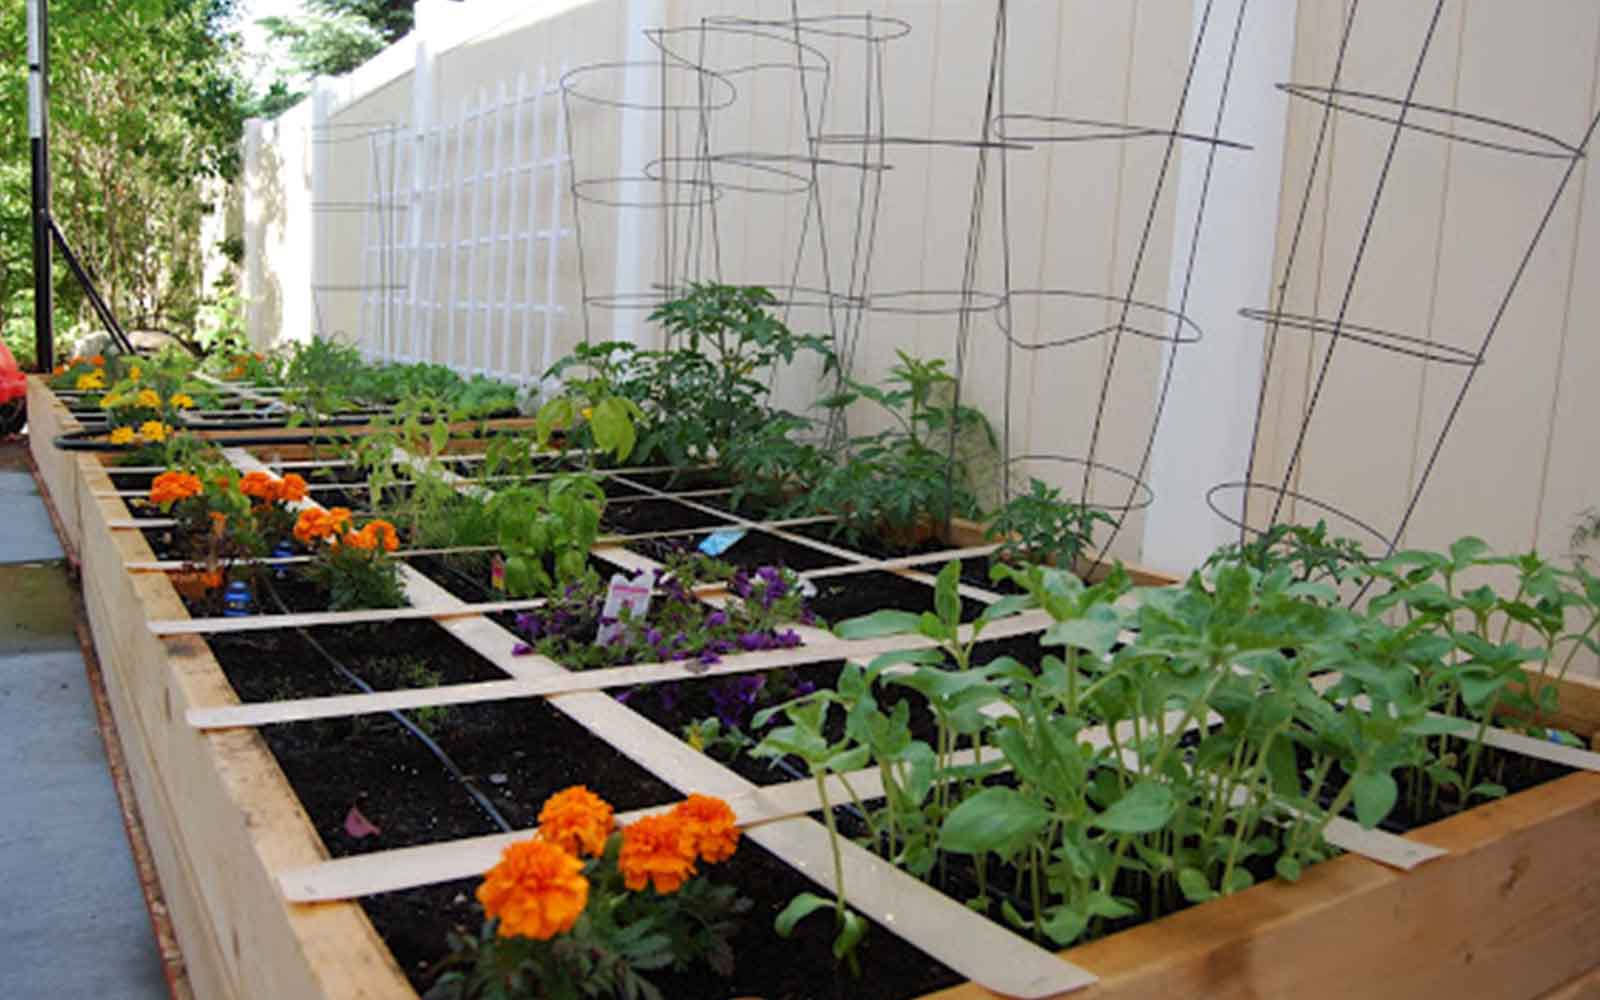 GrowFood - Square foot gardening